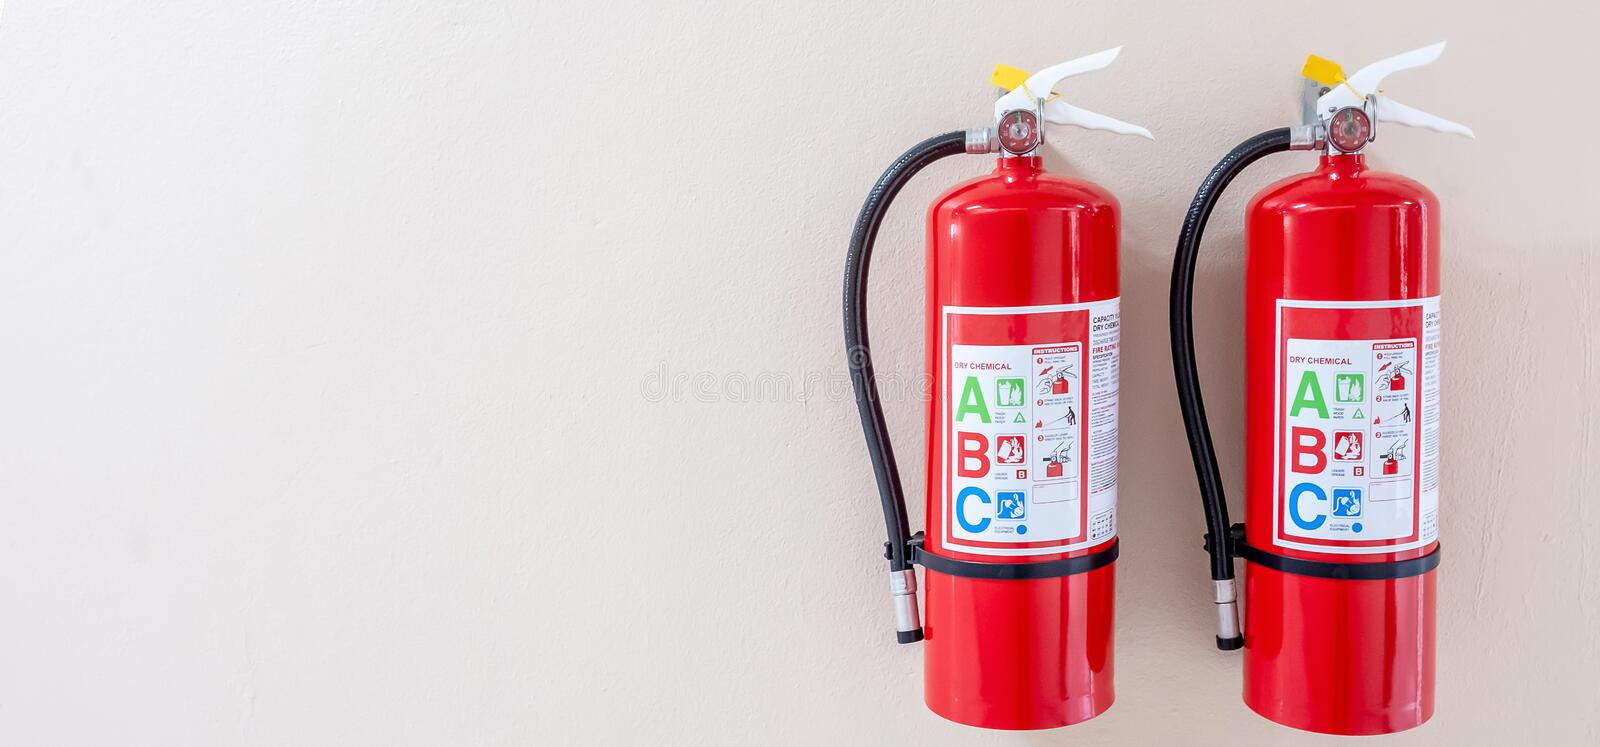 Fire extinguisher system on the wall background, powerful emergency equipment for industrial stock photos